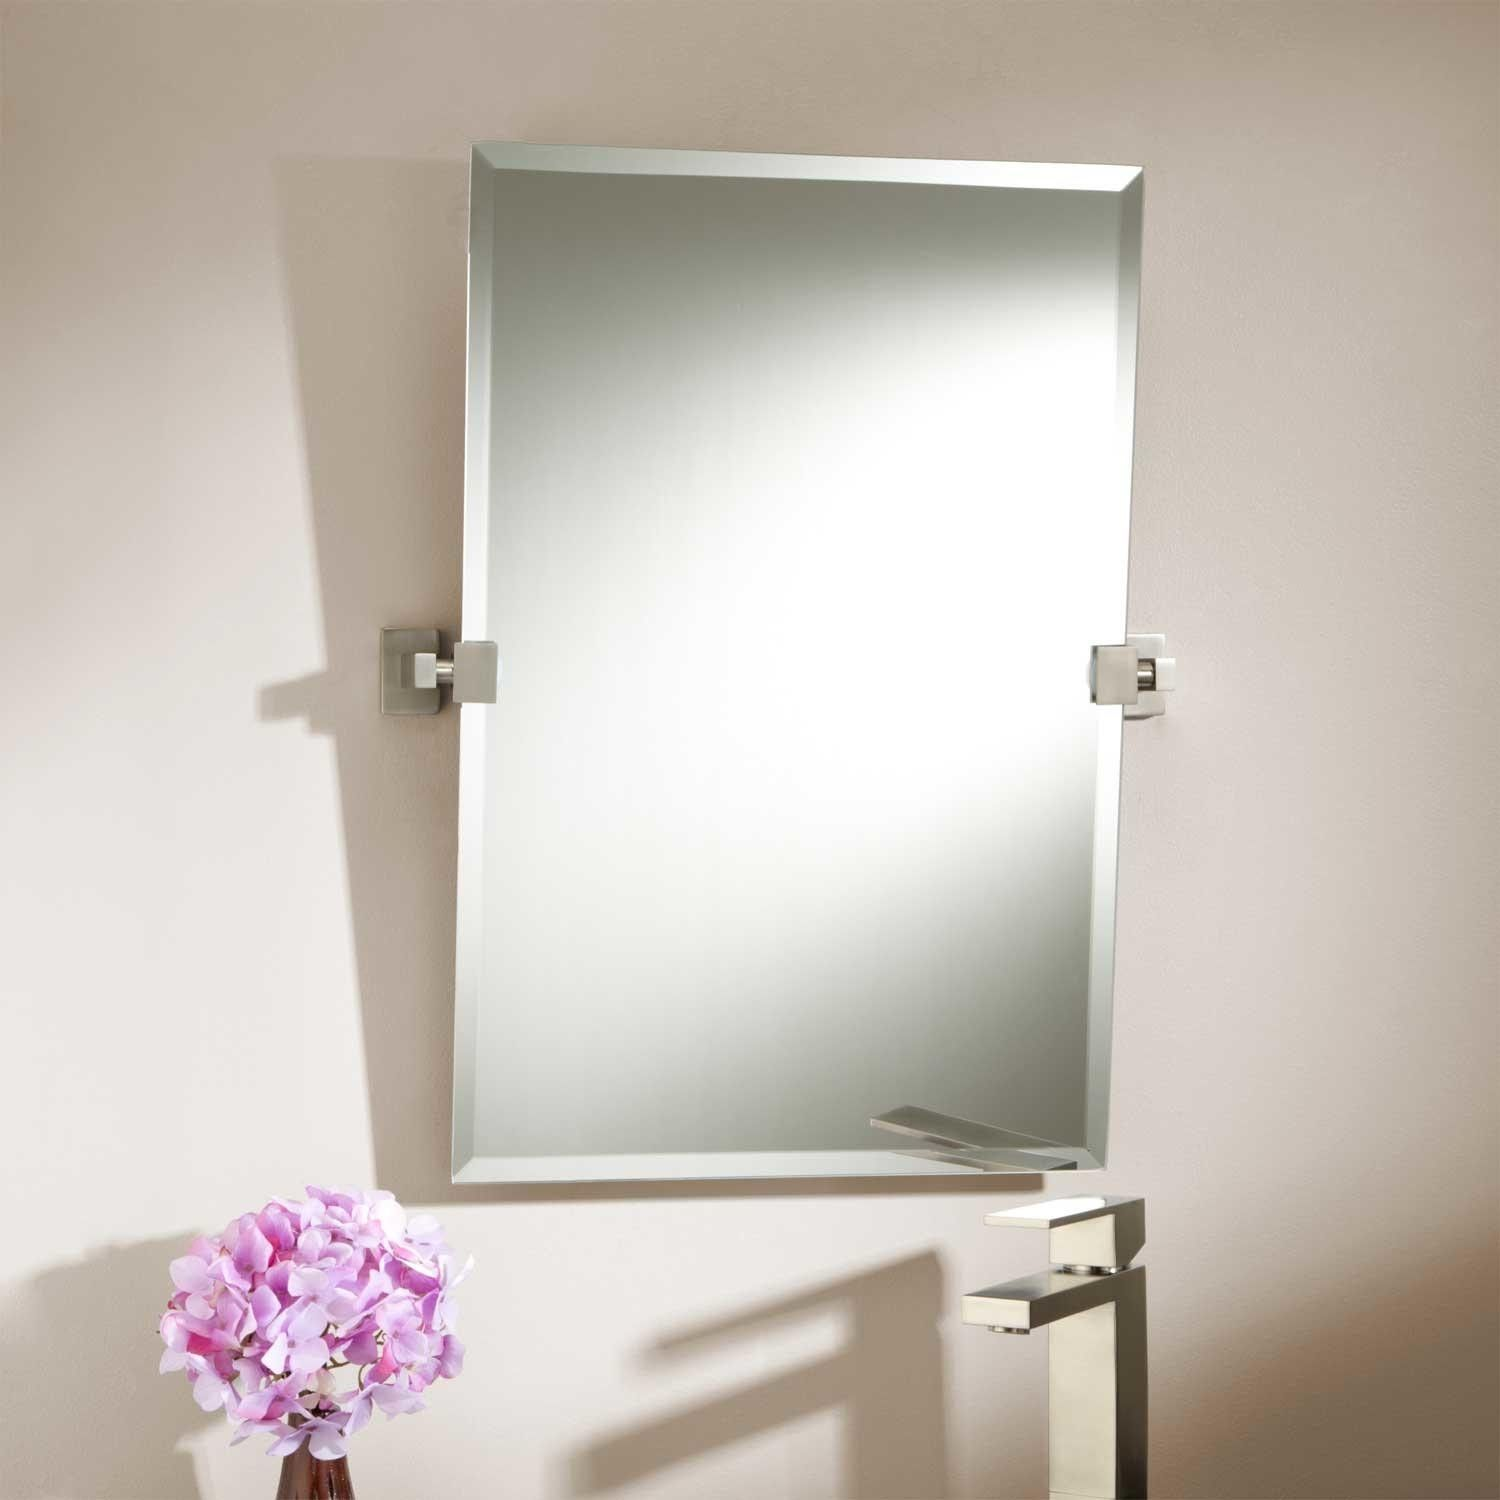 Bathroom pivot mirror rectangular drrw pinterest